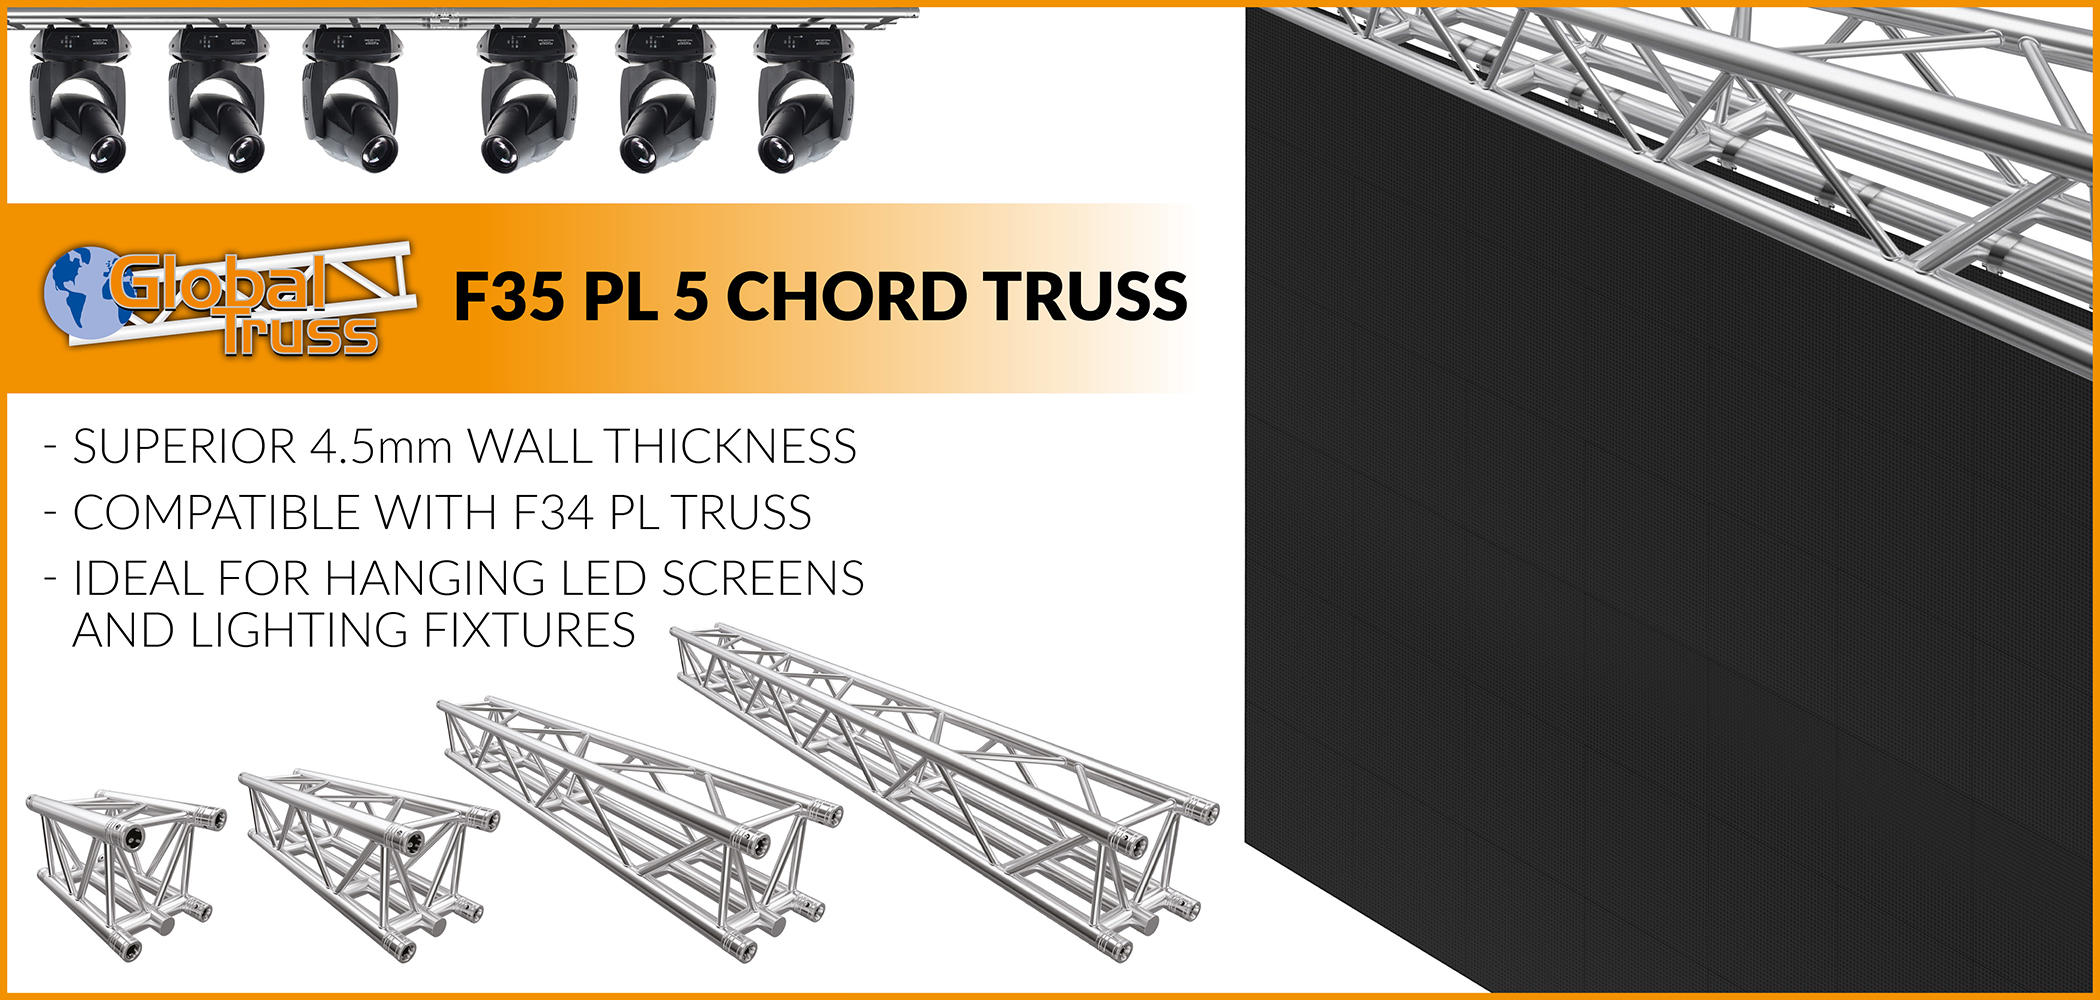 Global Truss F35 PL 5 Chord Truss